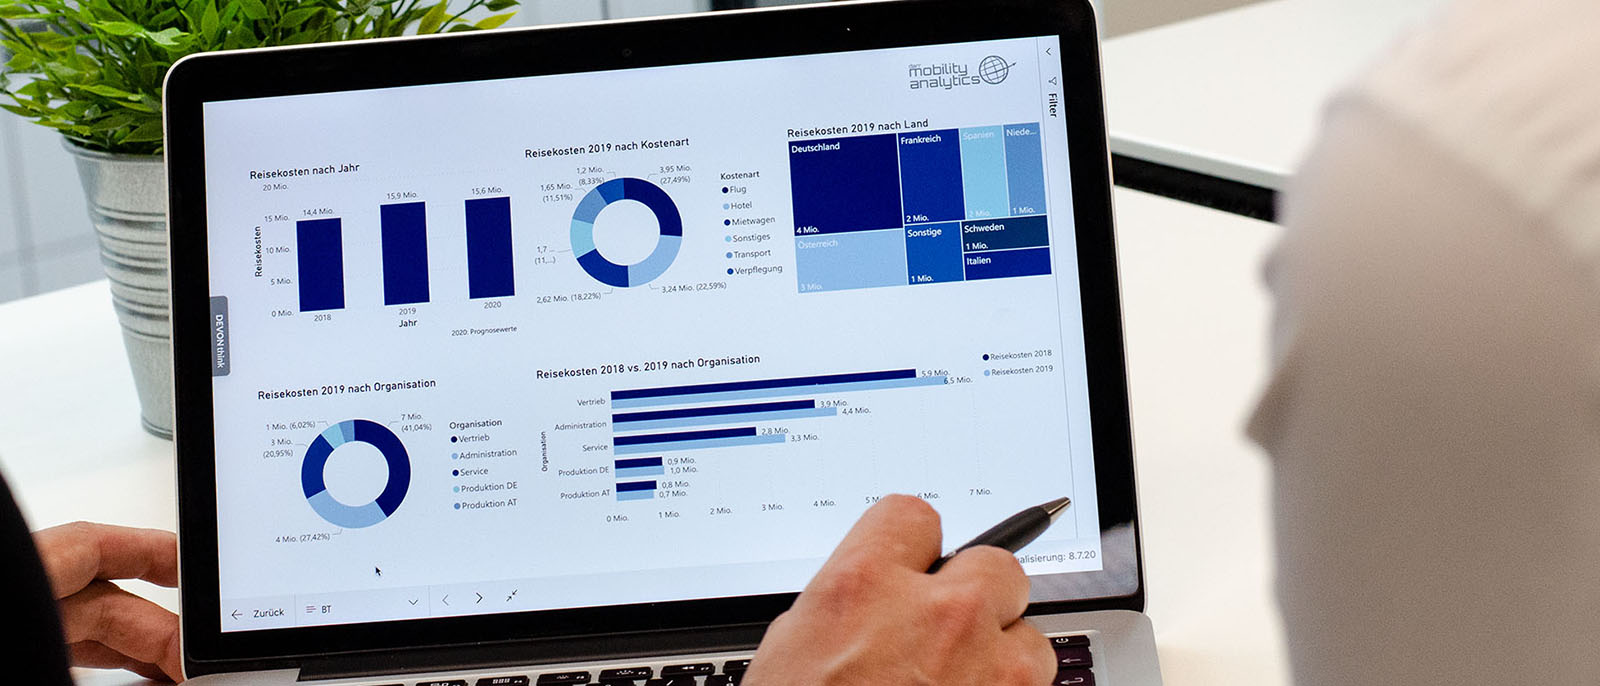 data analytics and business intelligence with darr mobility concepts